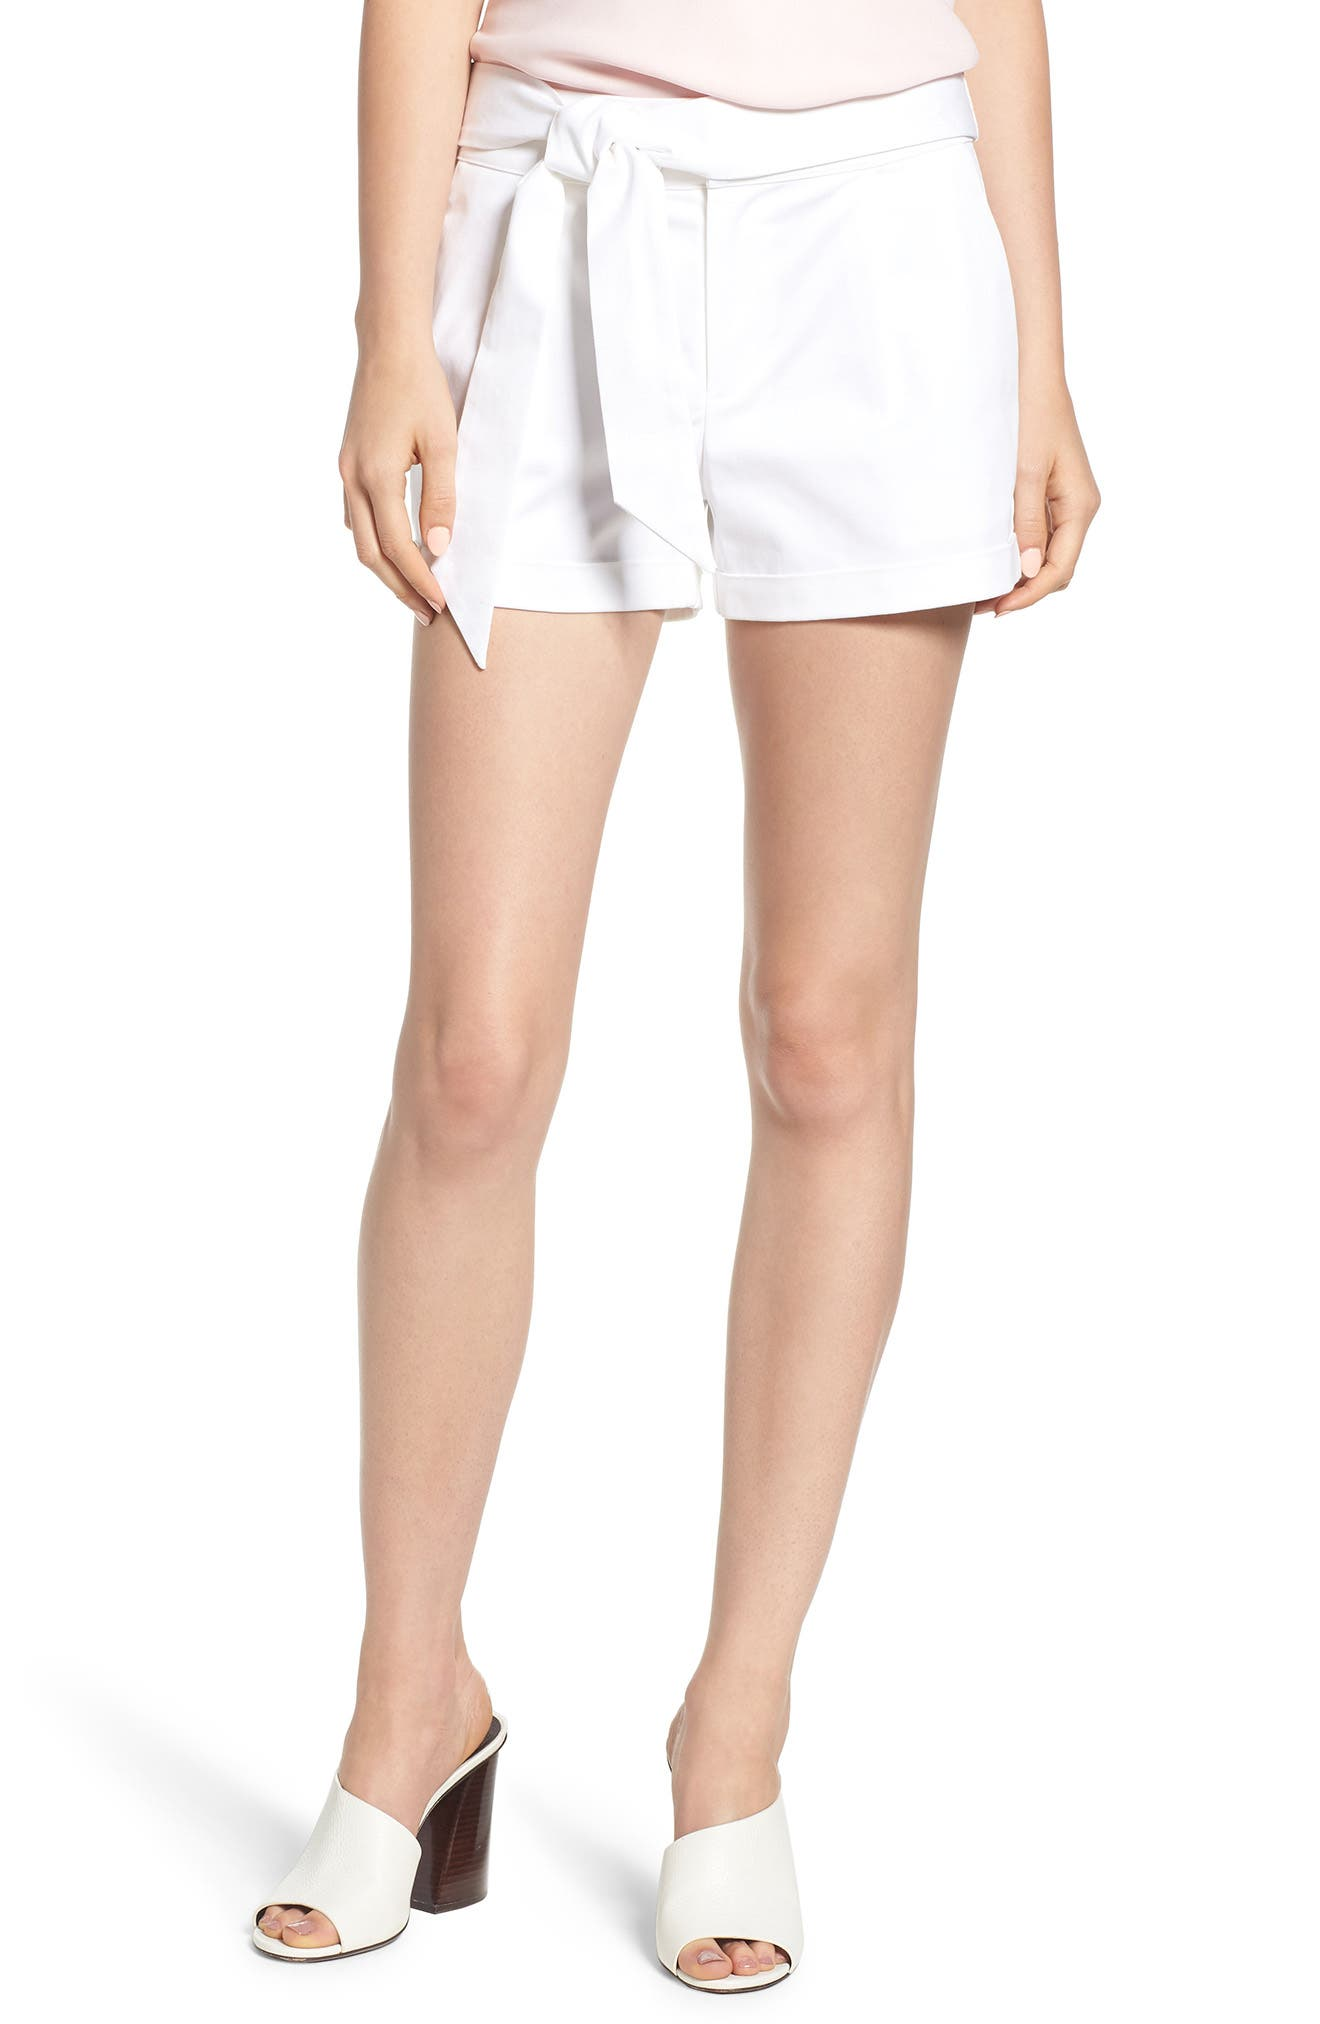 Yelinda Shorts,                         Main,                         color, White